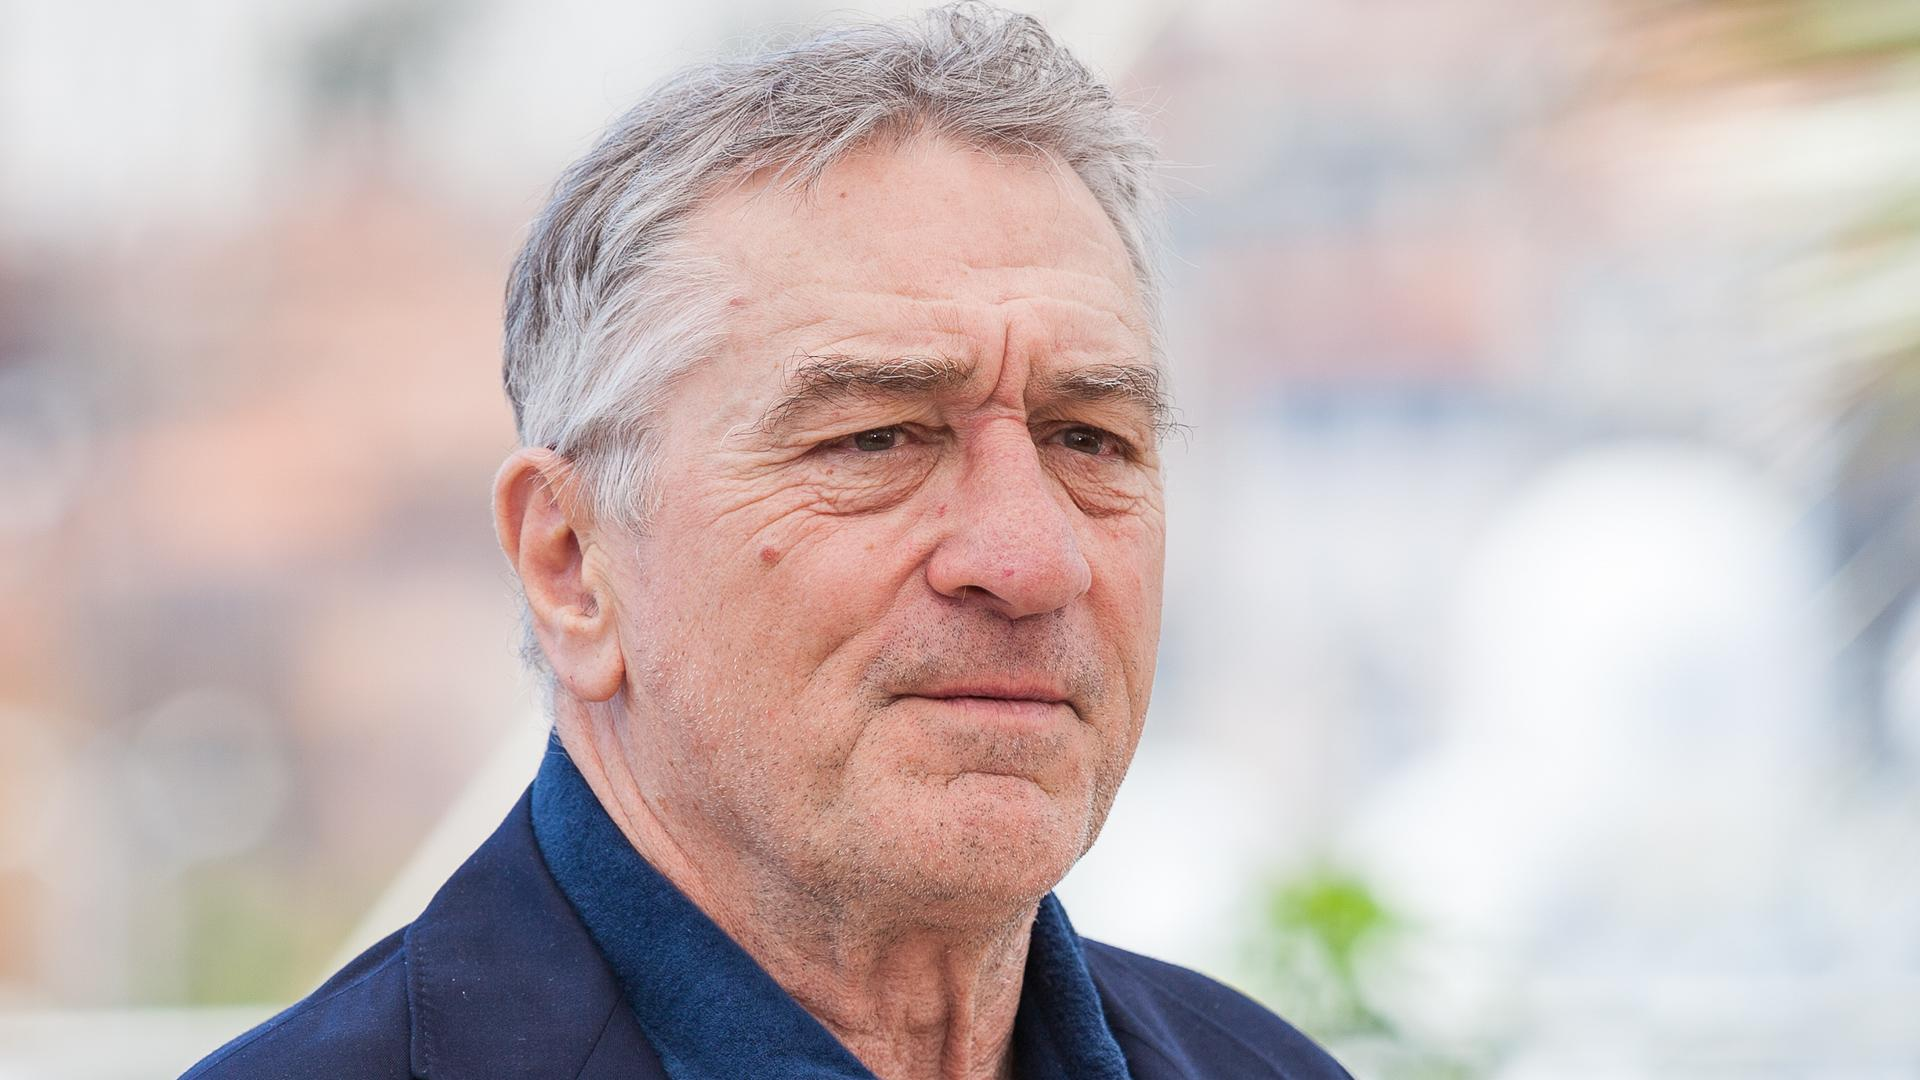 How Robert De Niro Built a Business Empire Worth $1 Billion